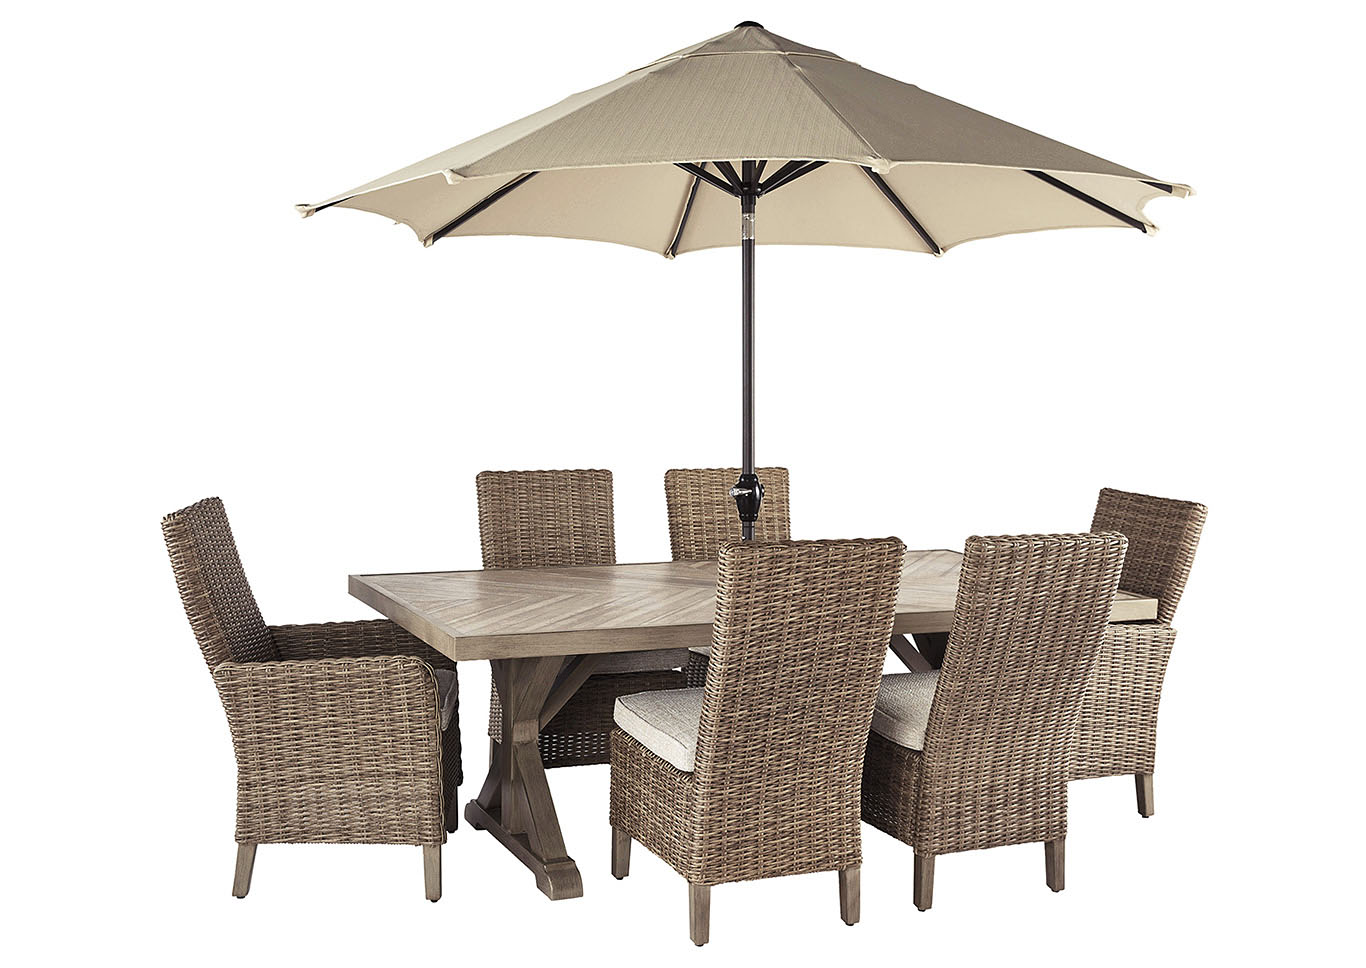 Beachcroft Dining Table W 4 Side Chairs And 2 Armed Chairs Ashley Furniture Homestore Independently Owned And Operated By Hamad M Al Rugaib Sons Trading Co